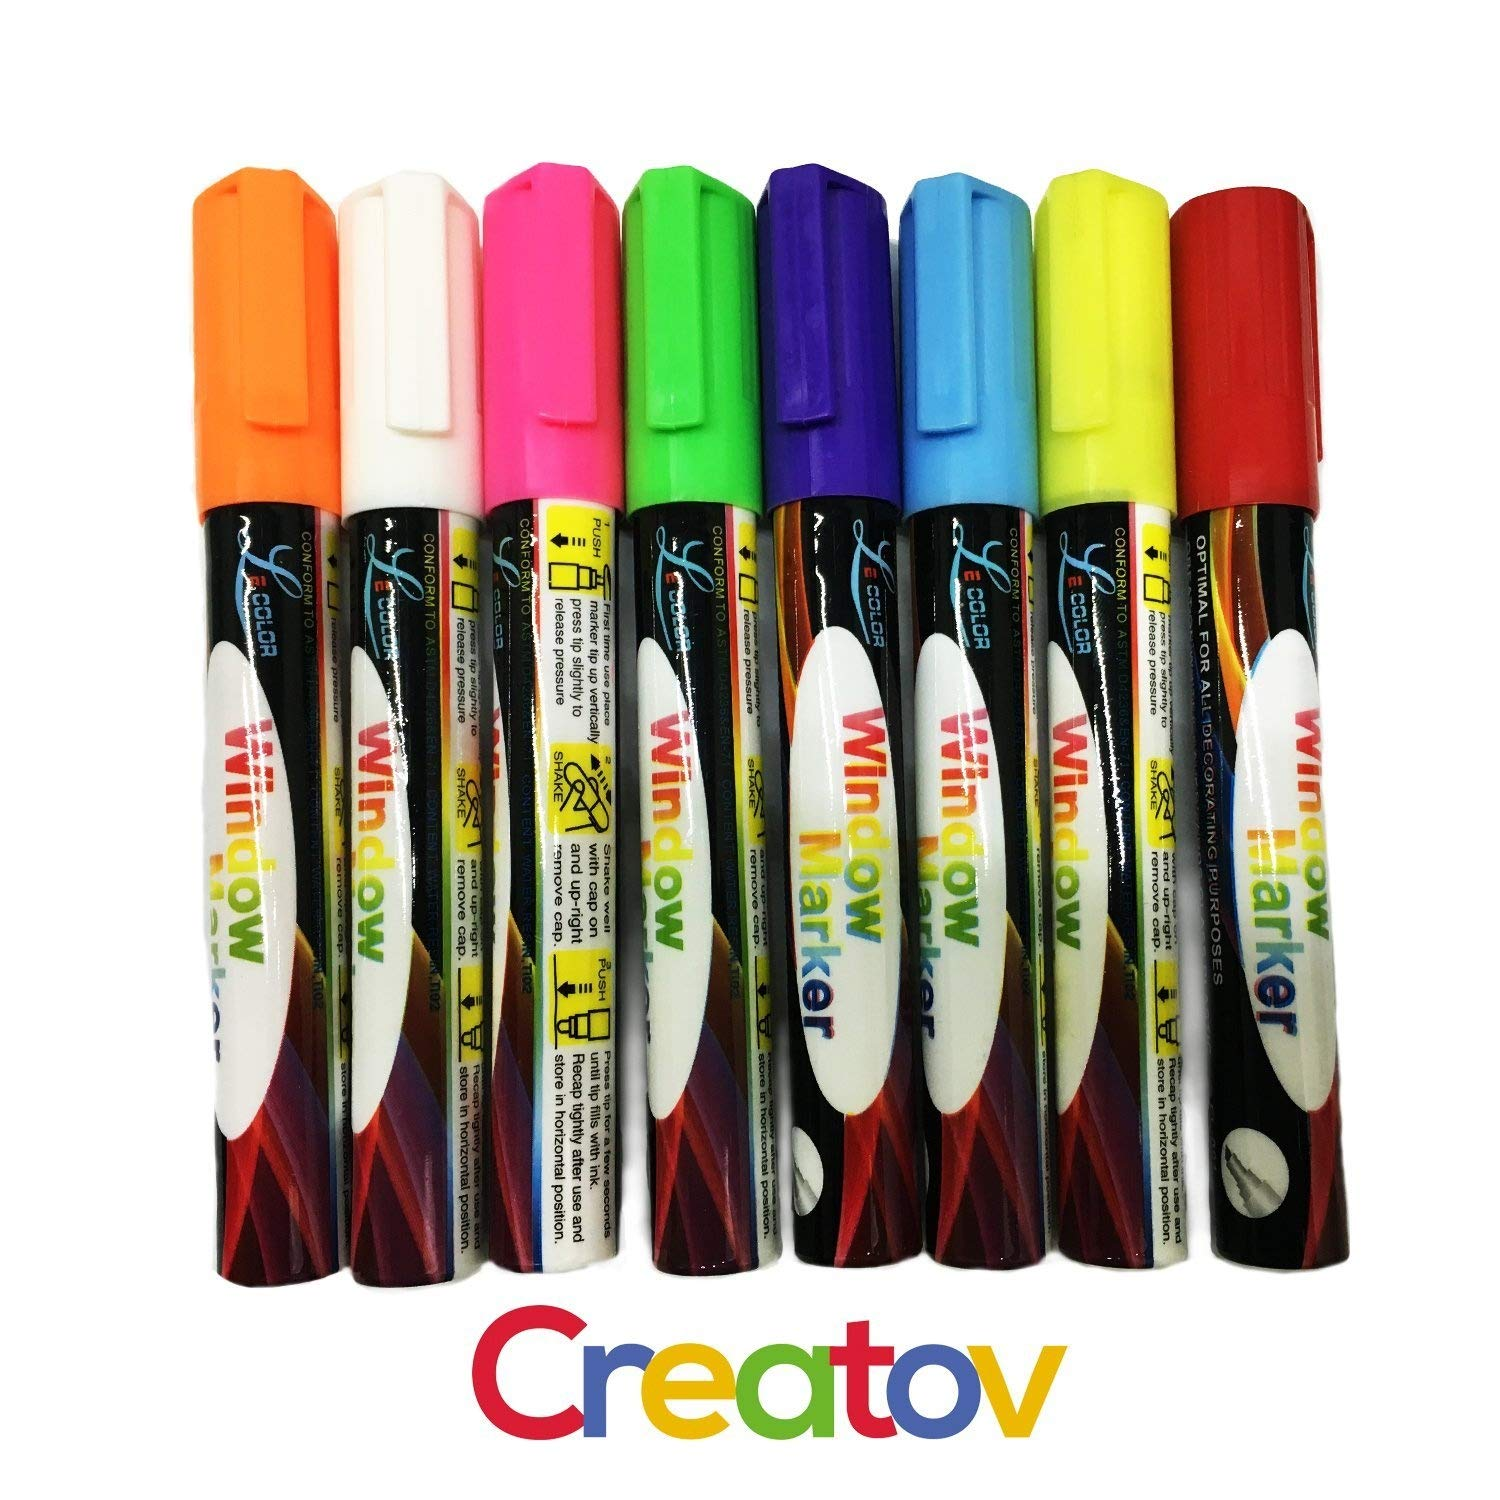 Liquid Chalk Washable Markers, 8 Colored Chalk Markers, Neon & White, Safe & Easy to Use, Non-Toxic, Great For All Ages, By Creatov by Creatov® CreatovÃ'® 4336946848